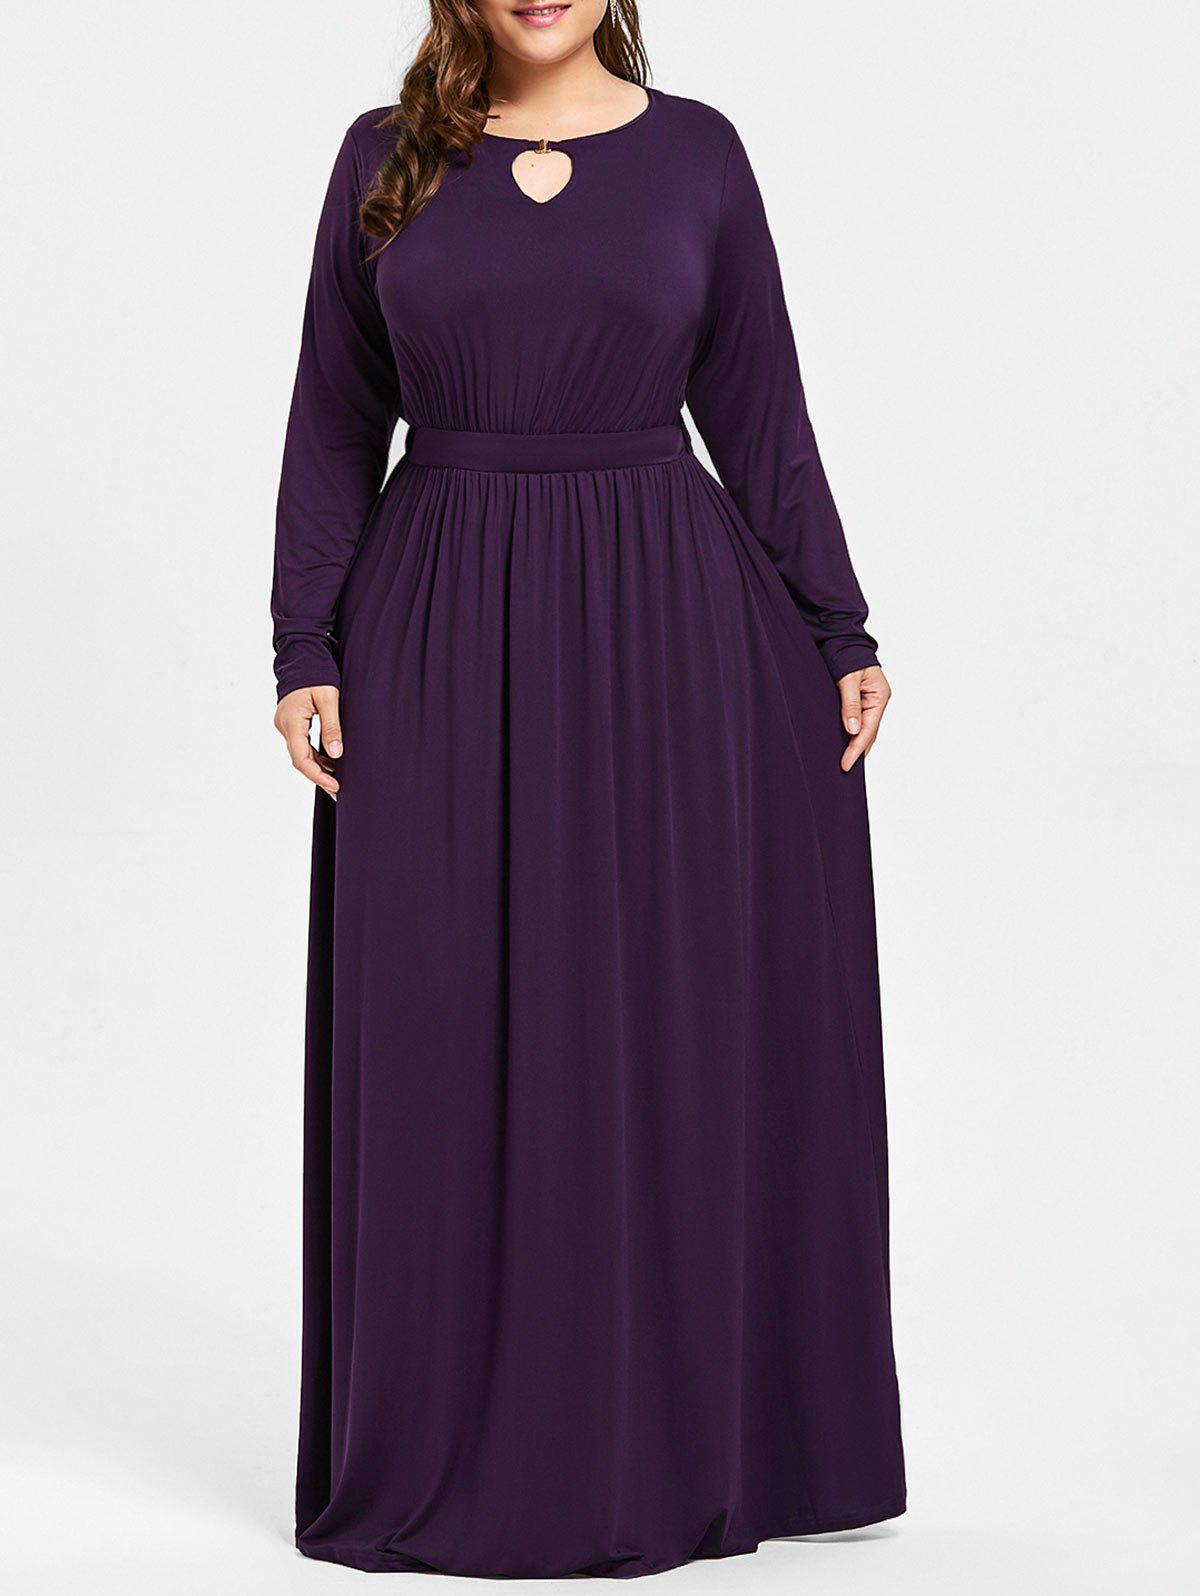 Keyhole Maxi Plus Size DressWOMEN<br><br>Size: 3XL; Color: DEEP PURPLE; Style: Casual; Material: Cotton,Polyester; Silhouette: A-Line; Dresses Length: Floor-Length; Neckline: Round Collar; Sleeve Length: Long Sleeves; Pattern Type: Solid; With Belt: No; Season: Fall; Weight: 0.5900kg; Package Contents: 1 x Dress;